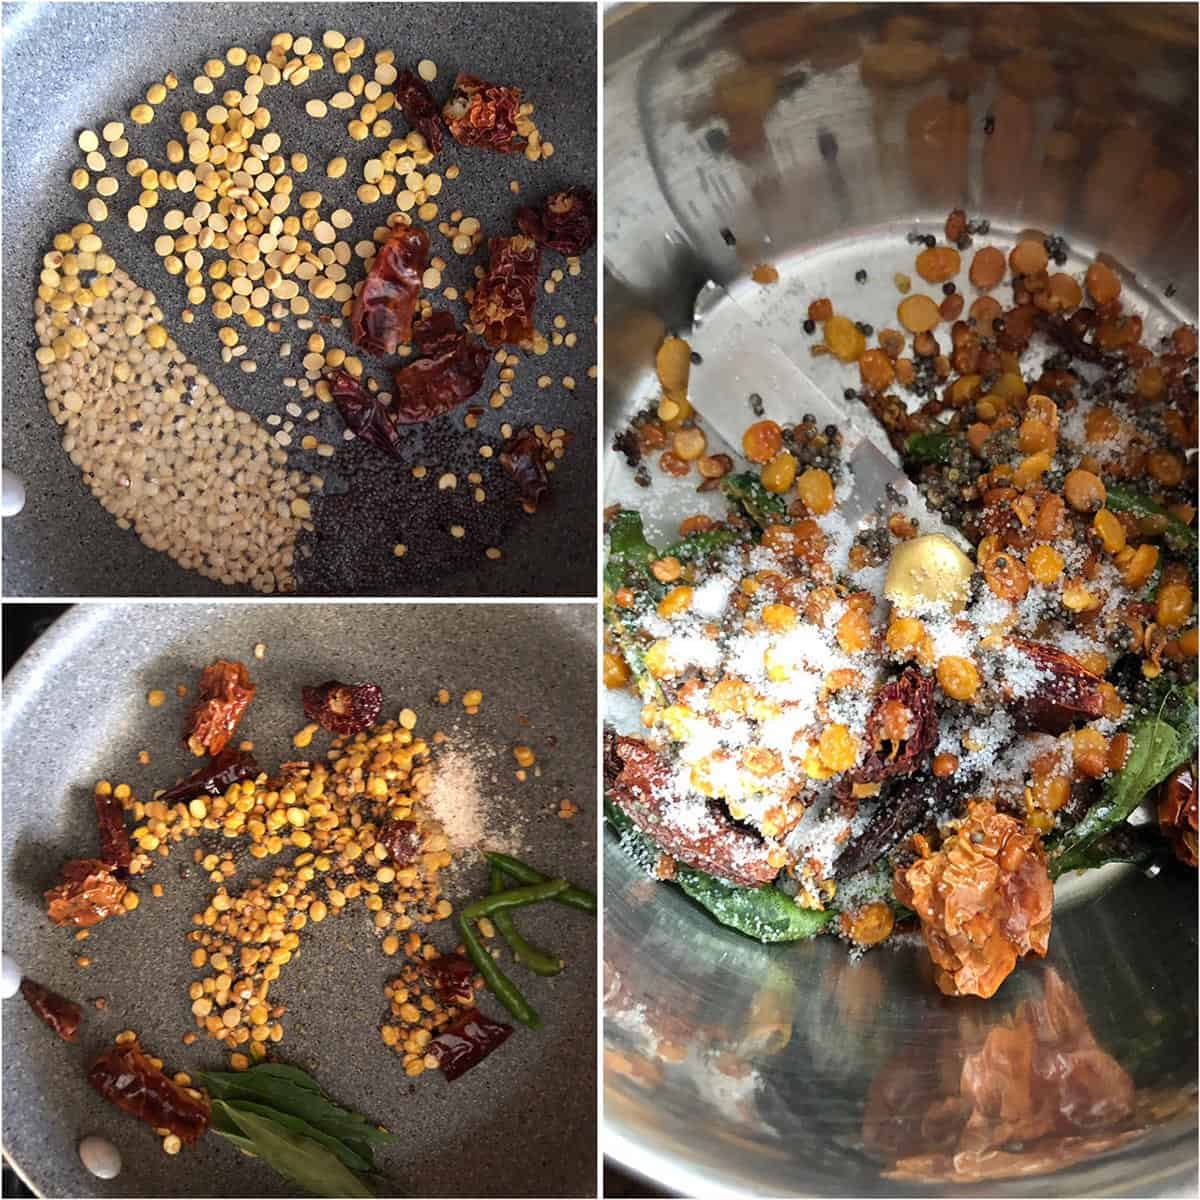 Step by step photos showing the sautéing of spices